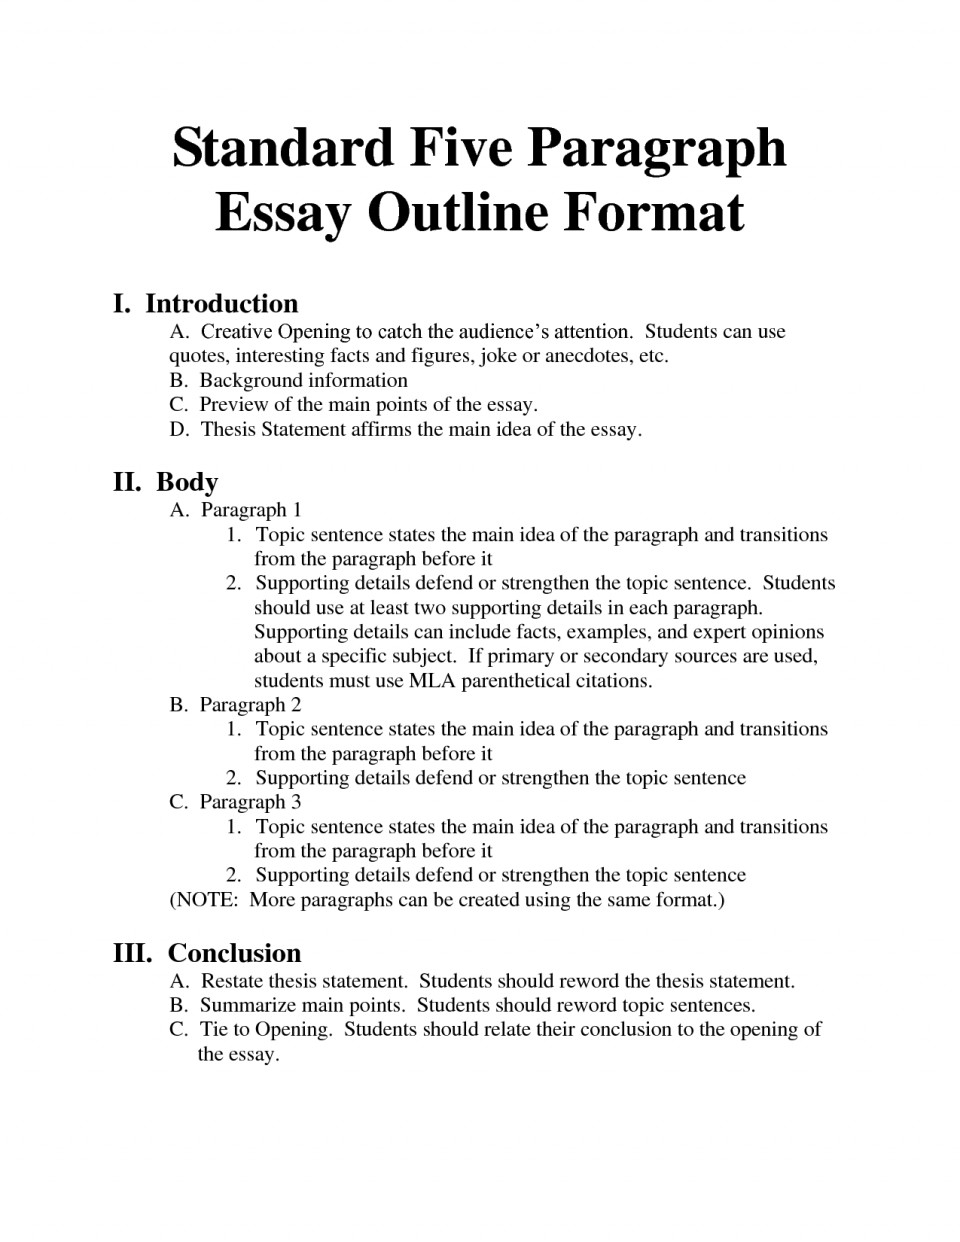 022 Easy Research Paper Topics Fantastic For High School Students Reddit To Write About 960